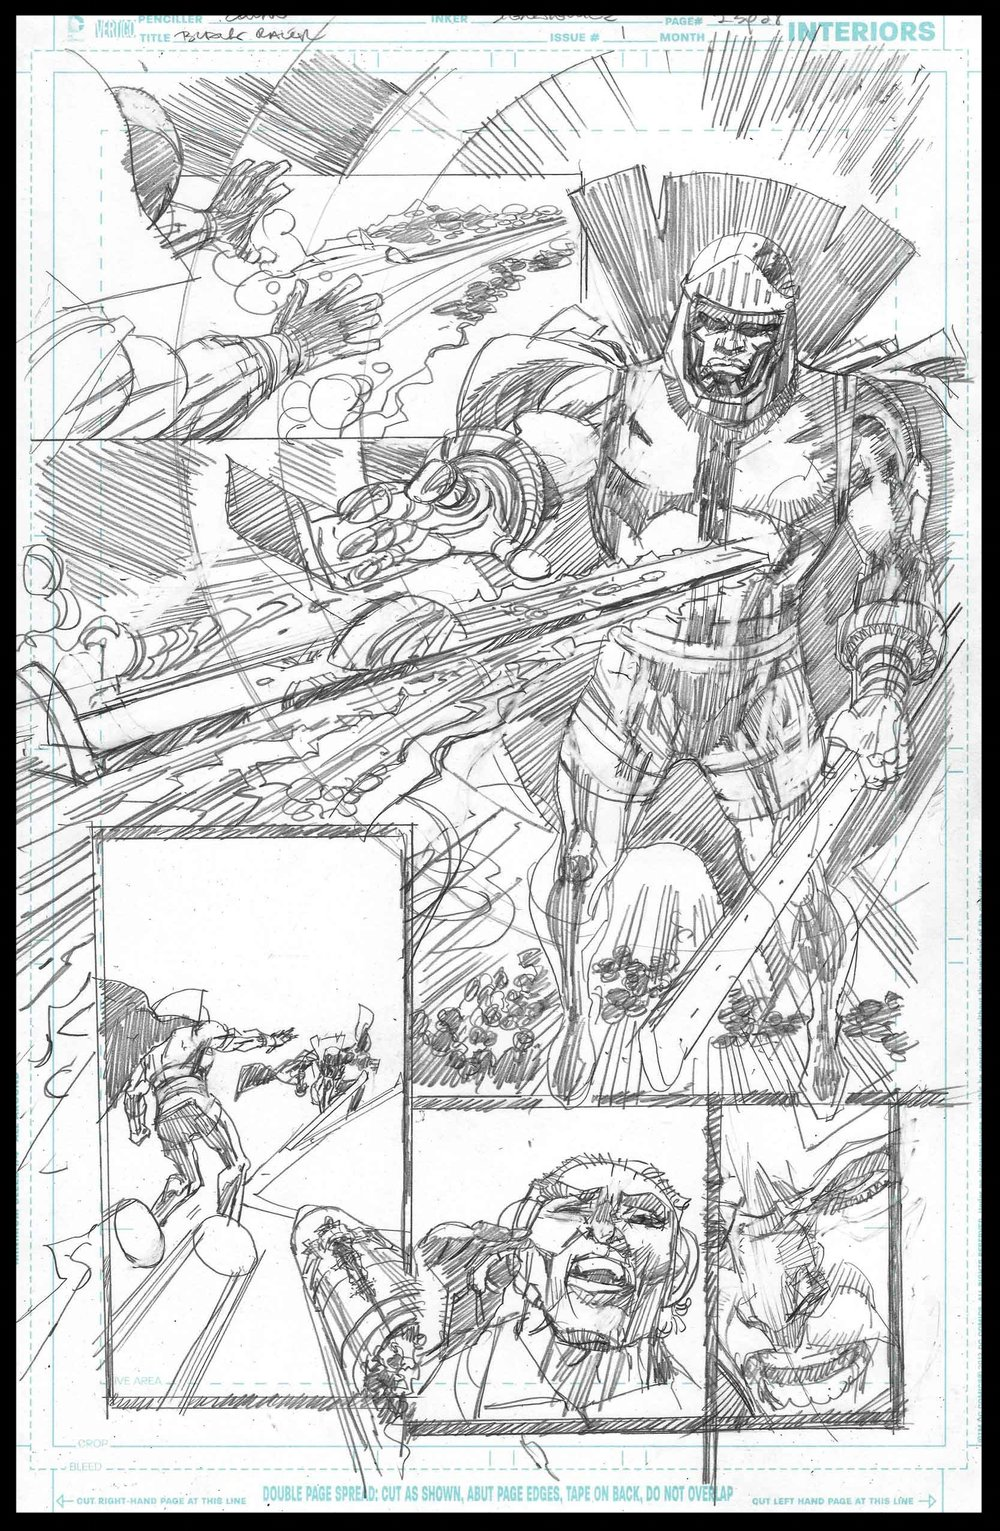 Black Racer #1 - Page 23 - Pencils